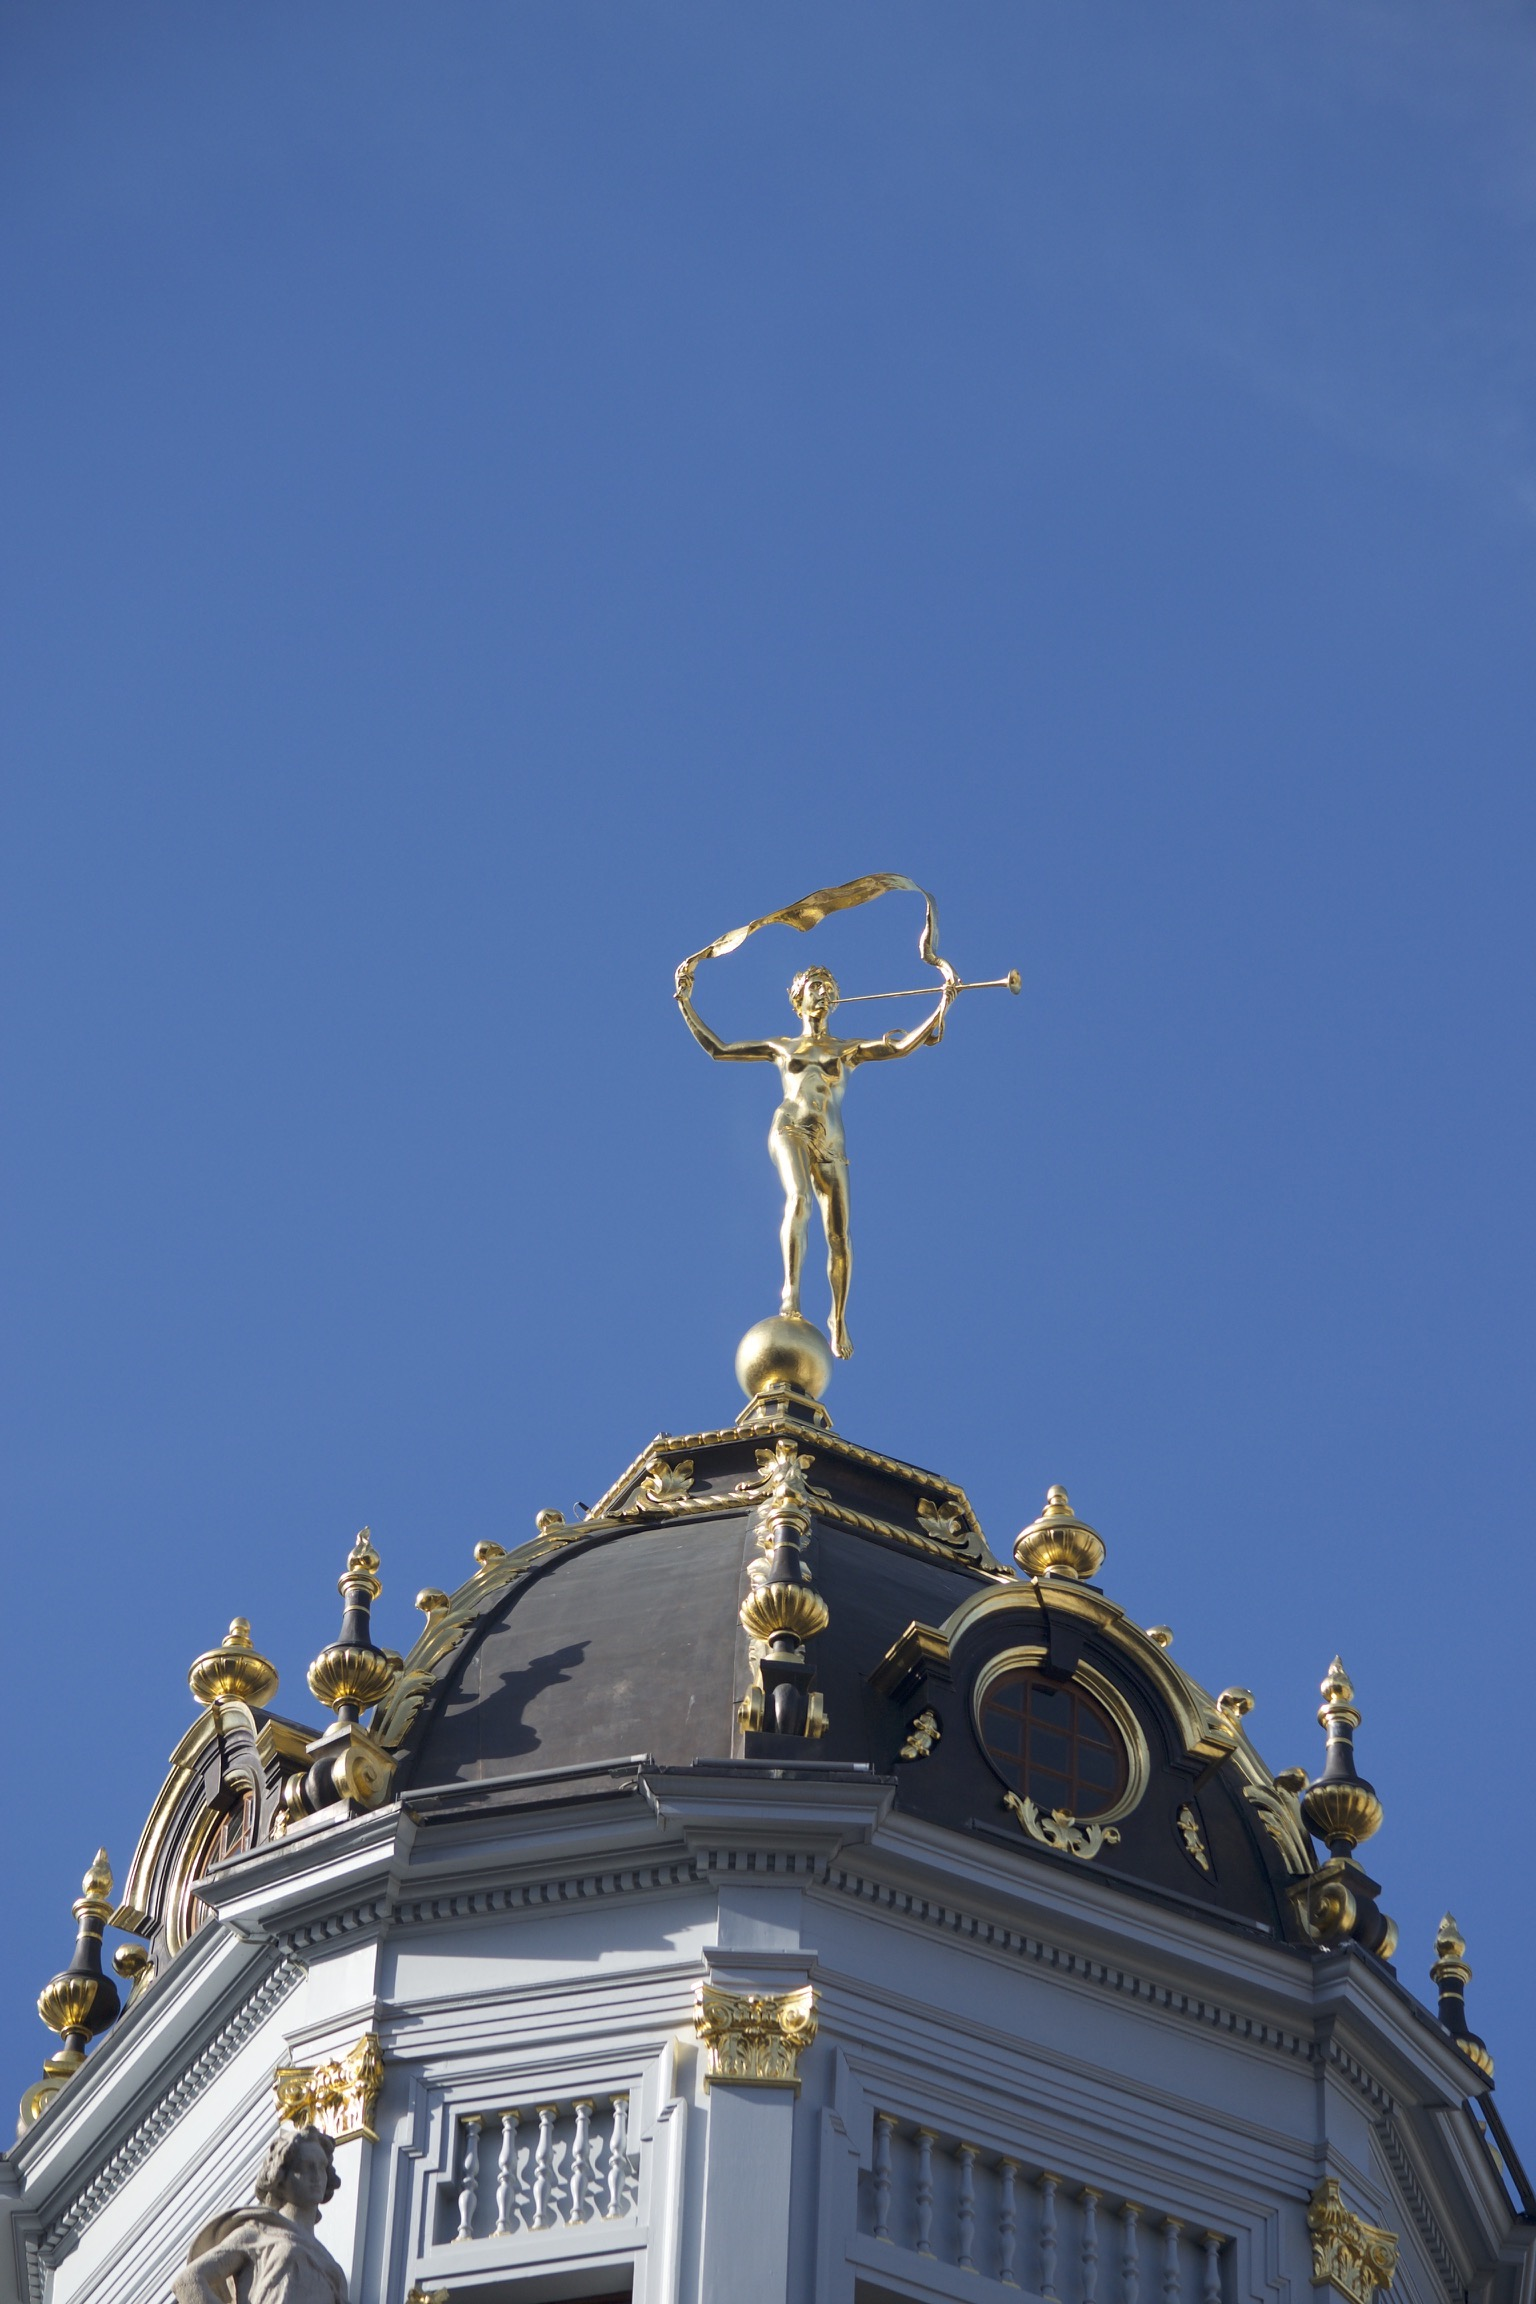 A golden figure blows a trumpet and holds a long ribbon atop a black and gilted roof dome.